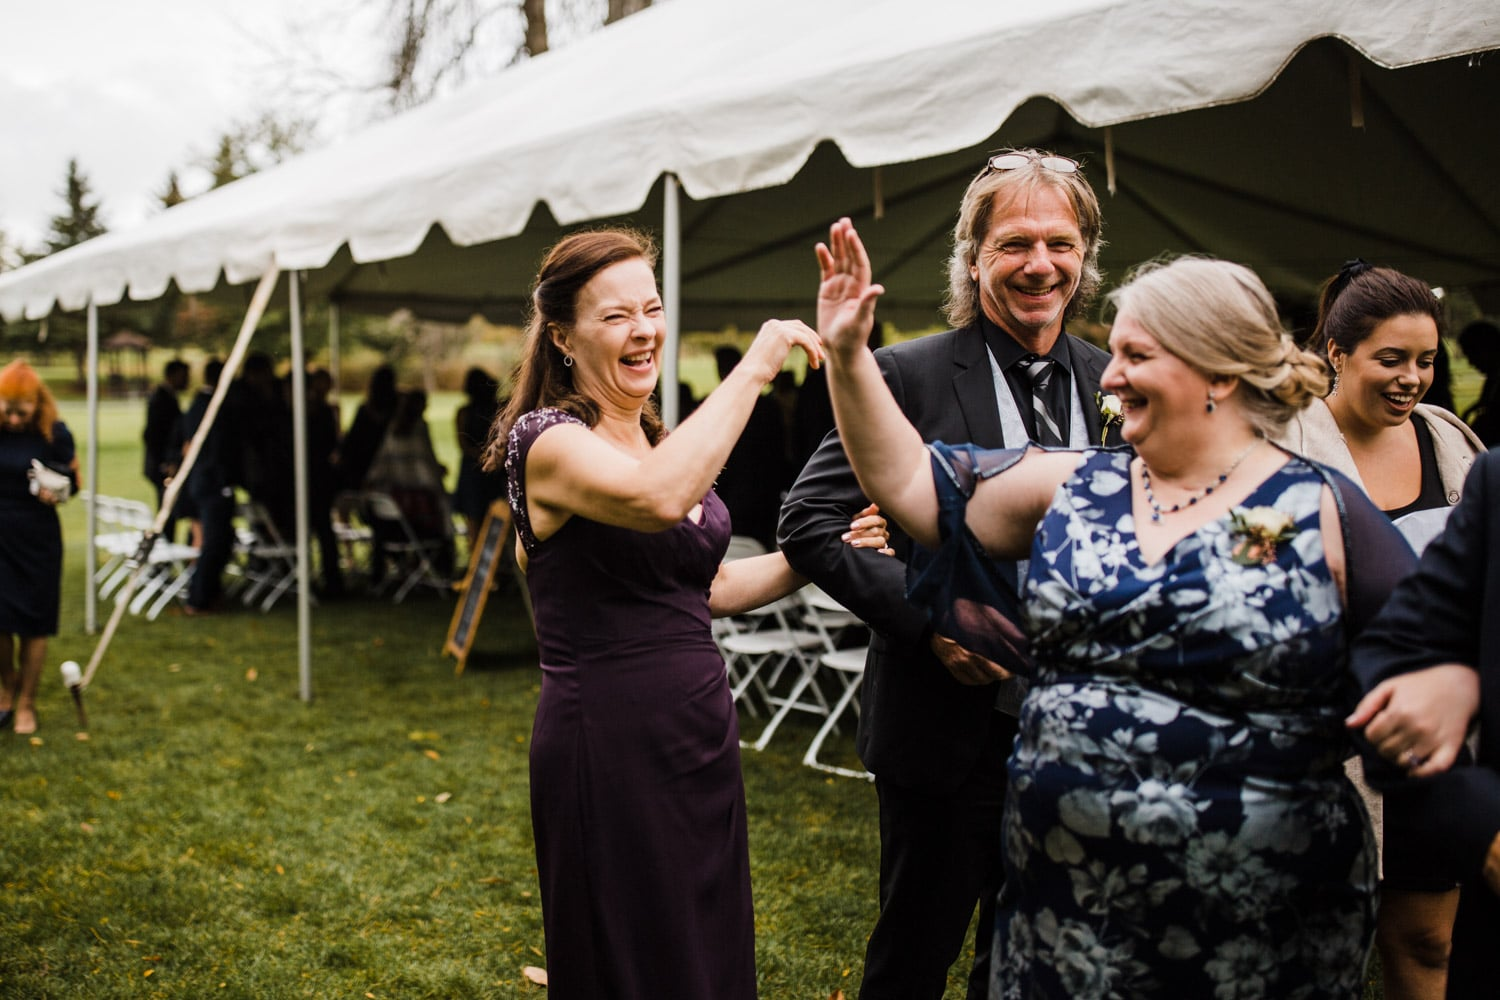 mothers of bride and groom celebrate with high-five after ceremony